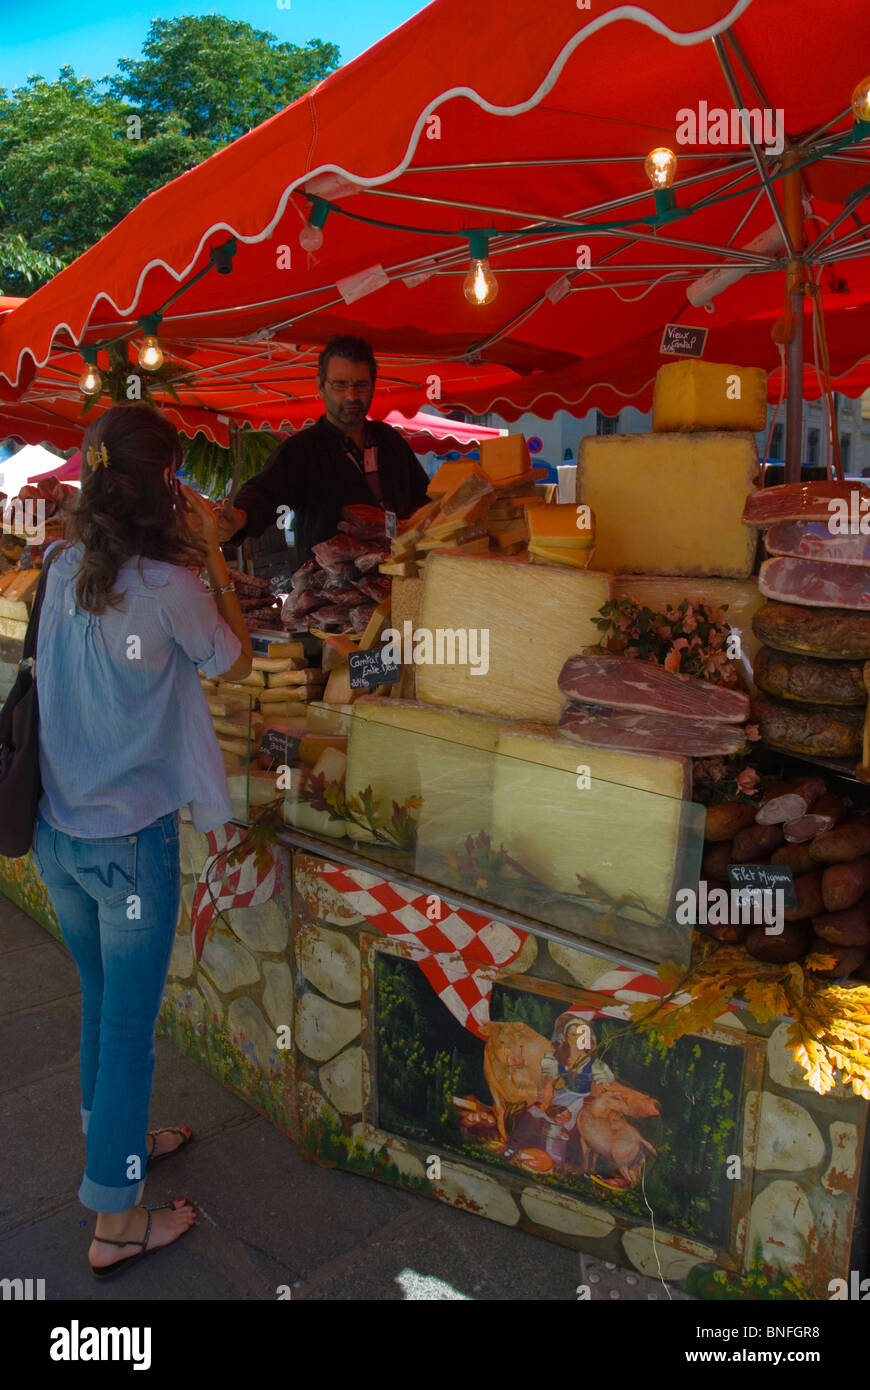 Cheese and meat stall Marche Parmentier street market along Boulevard Richard Lenoir Paris France Europe - Stock Image